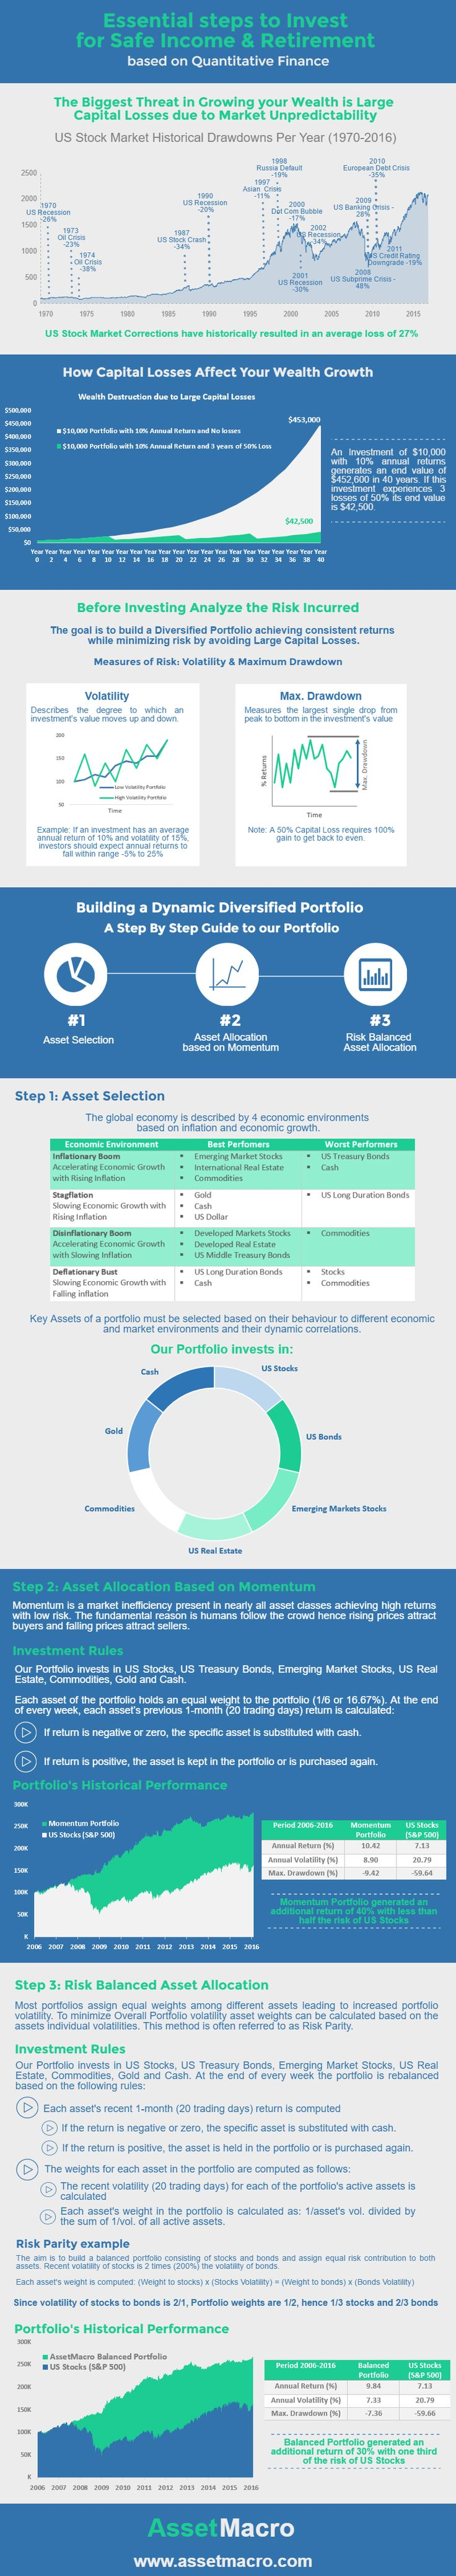 Essential steps to Invest for Safe Income & Retirement based on Quantitative Finance